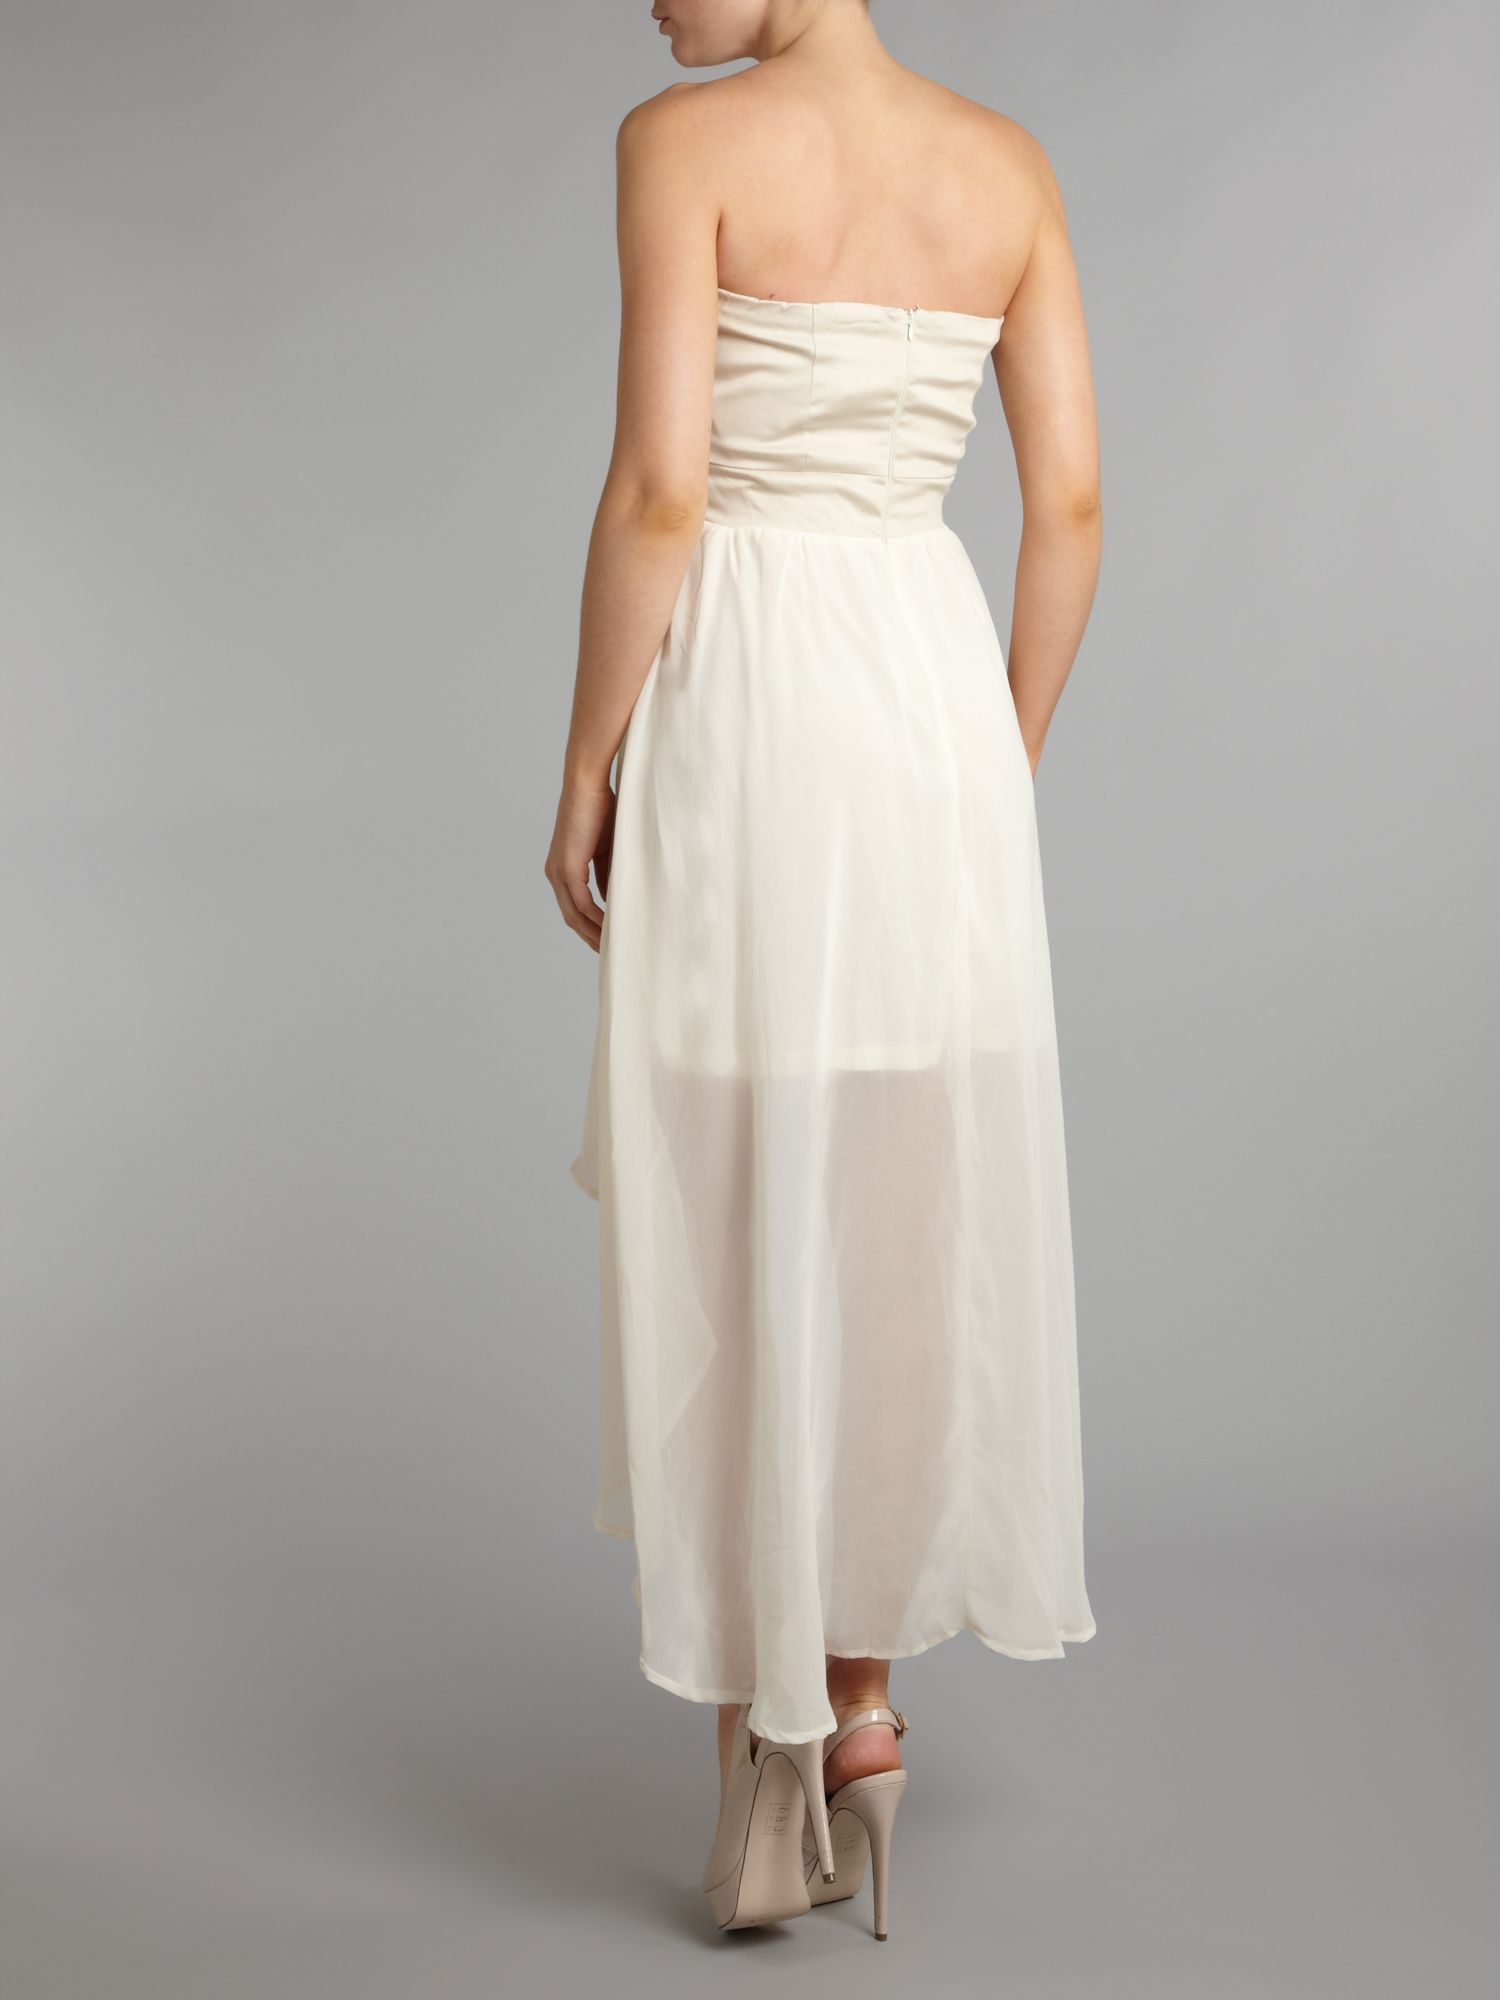 Ax paris jewel drop back chiffon dress